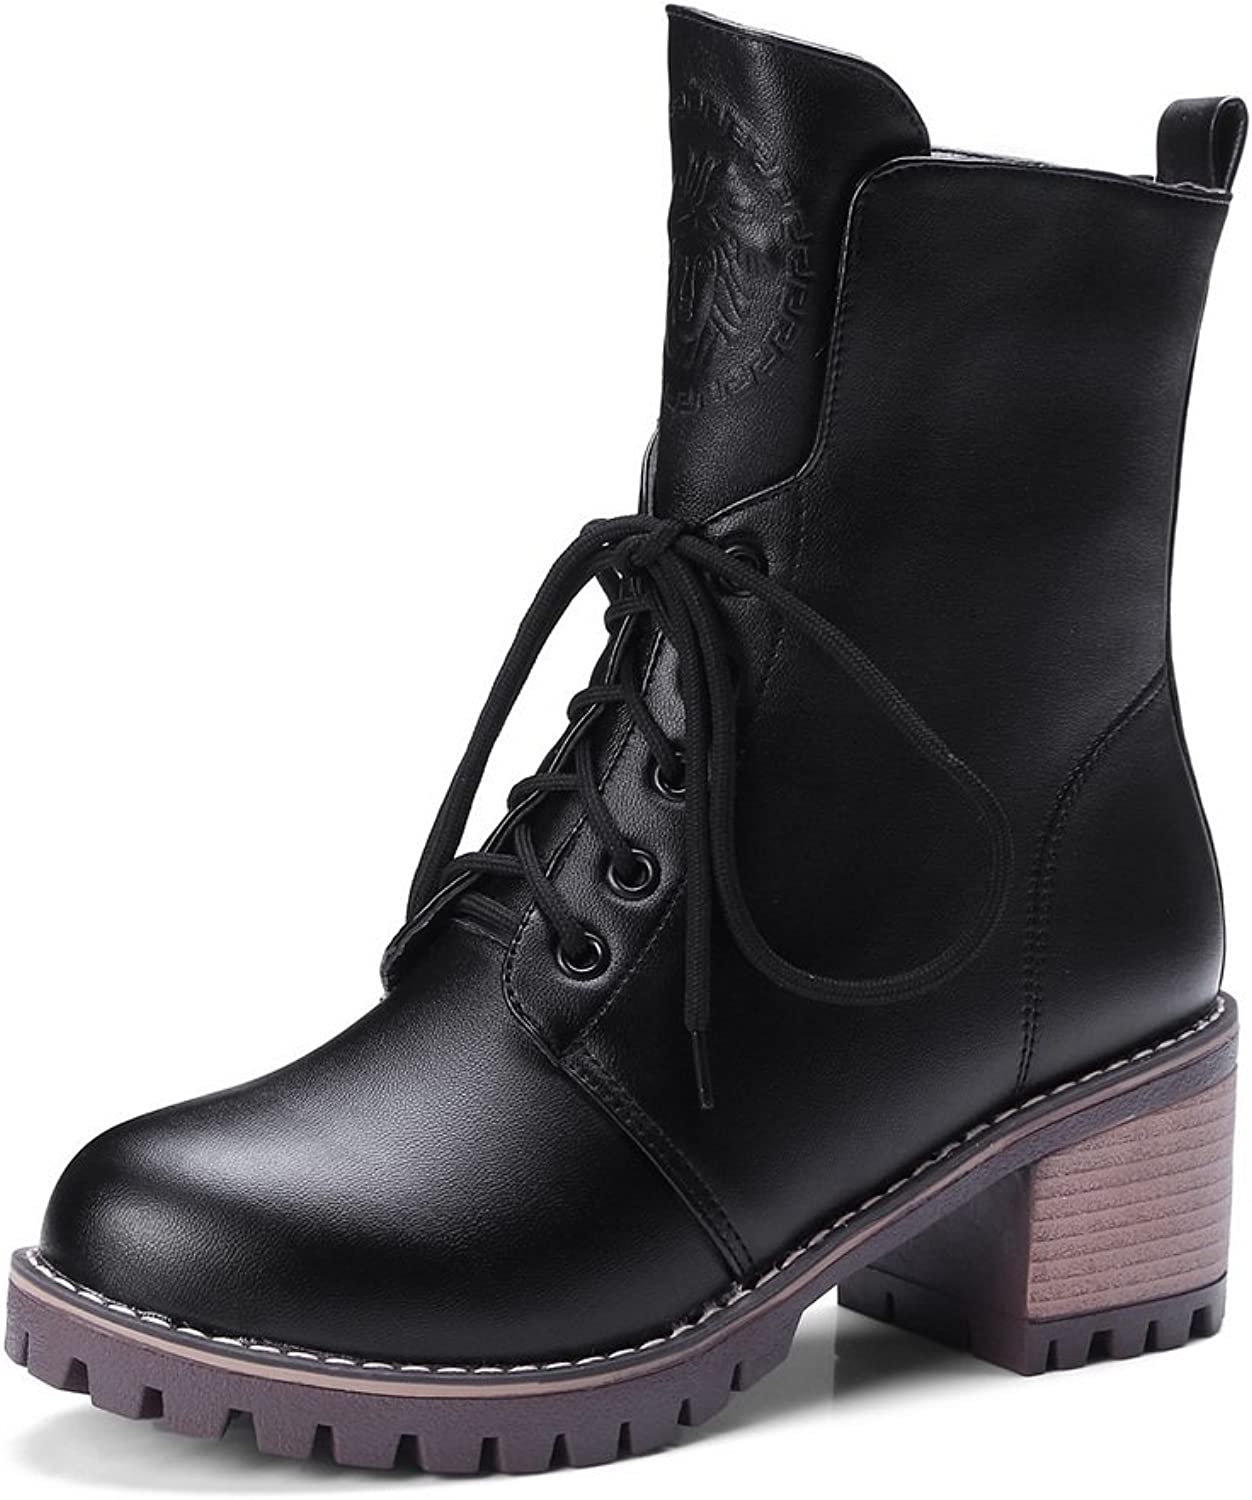 1TO9 Womens Boots Closed-Toe Lace-Up Adjustable-Strap Kitten-Heel Warm Lining Road Cushioning Bootie Urethane Boots MNS02540